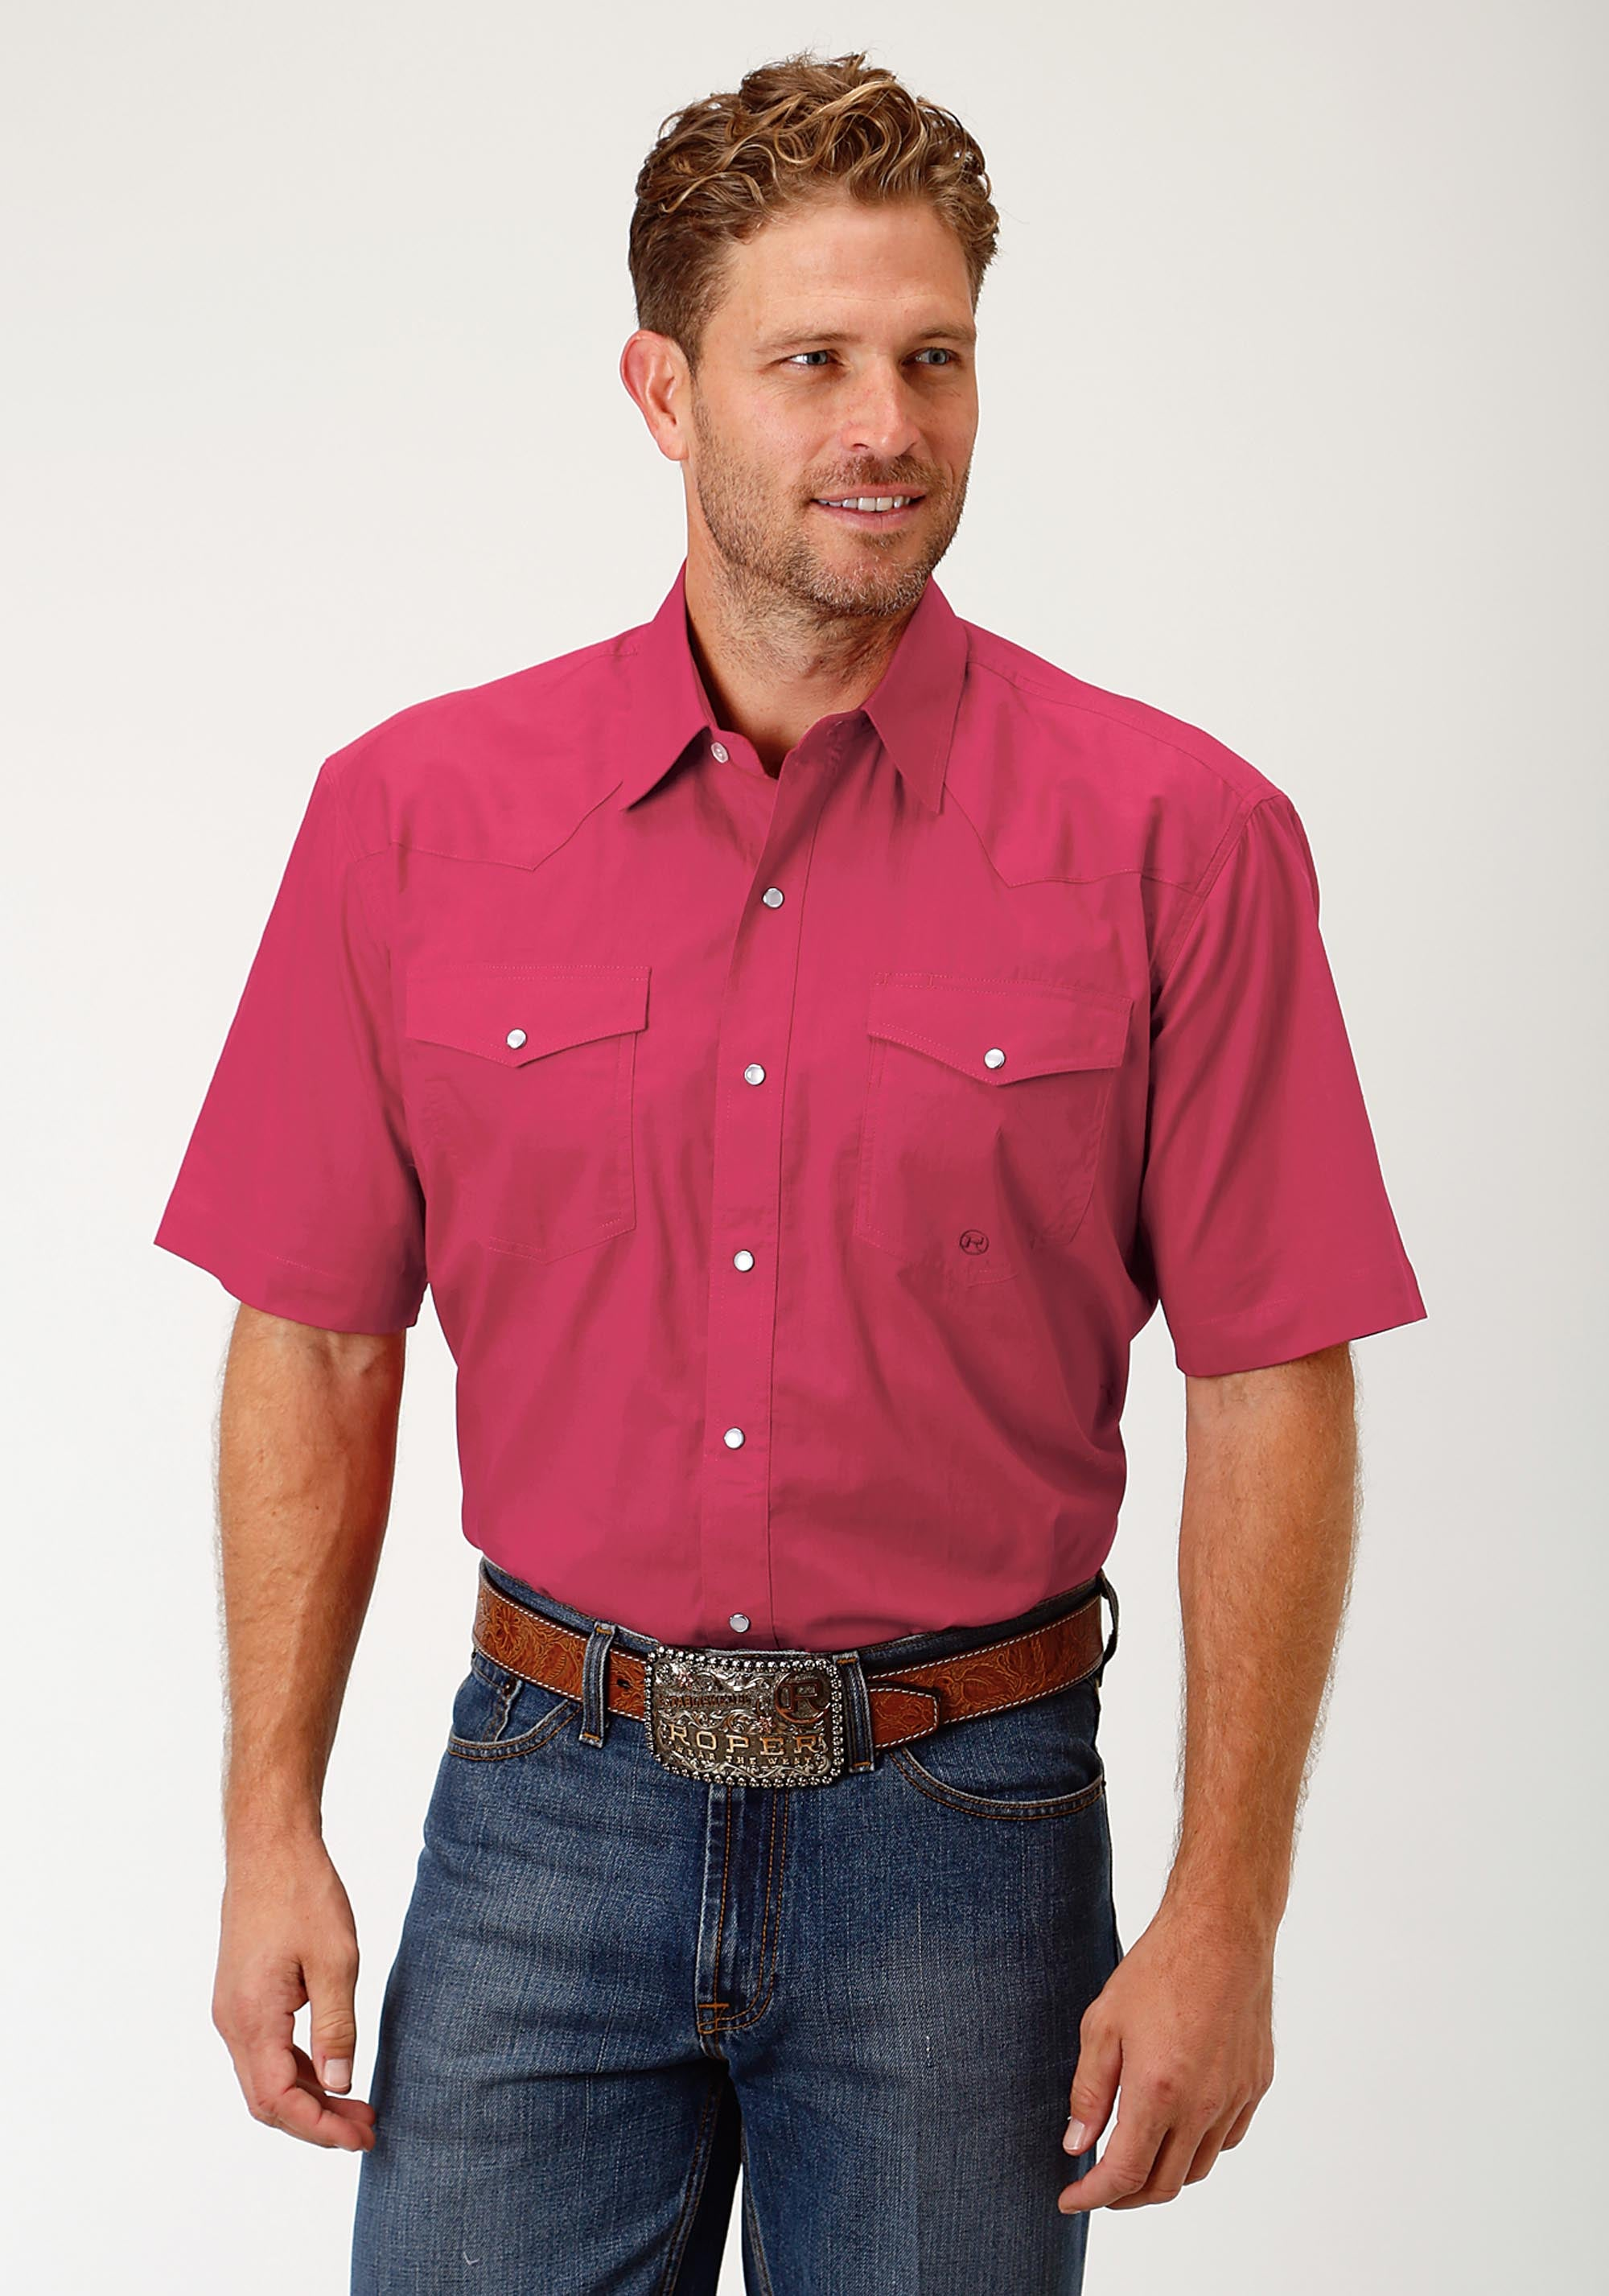 ROPER MENS RED 1691 SOLID POPLIN - RED MEN'S AMARILLO COLLECTION- ROUTE 66 SHORT SLEEVE SHIRT